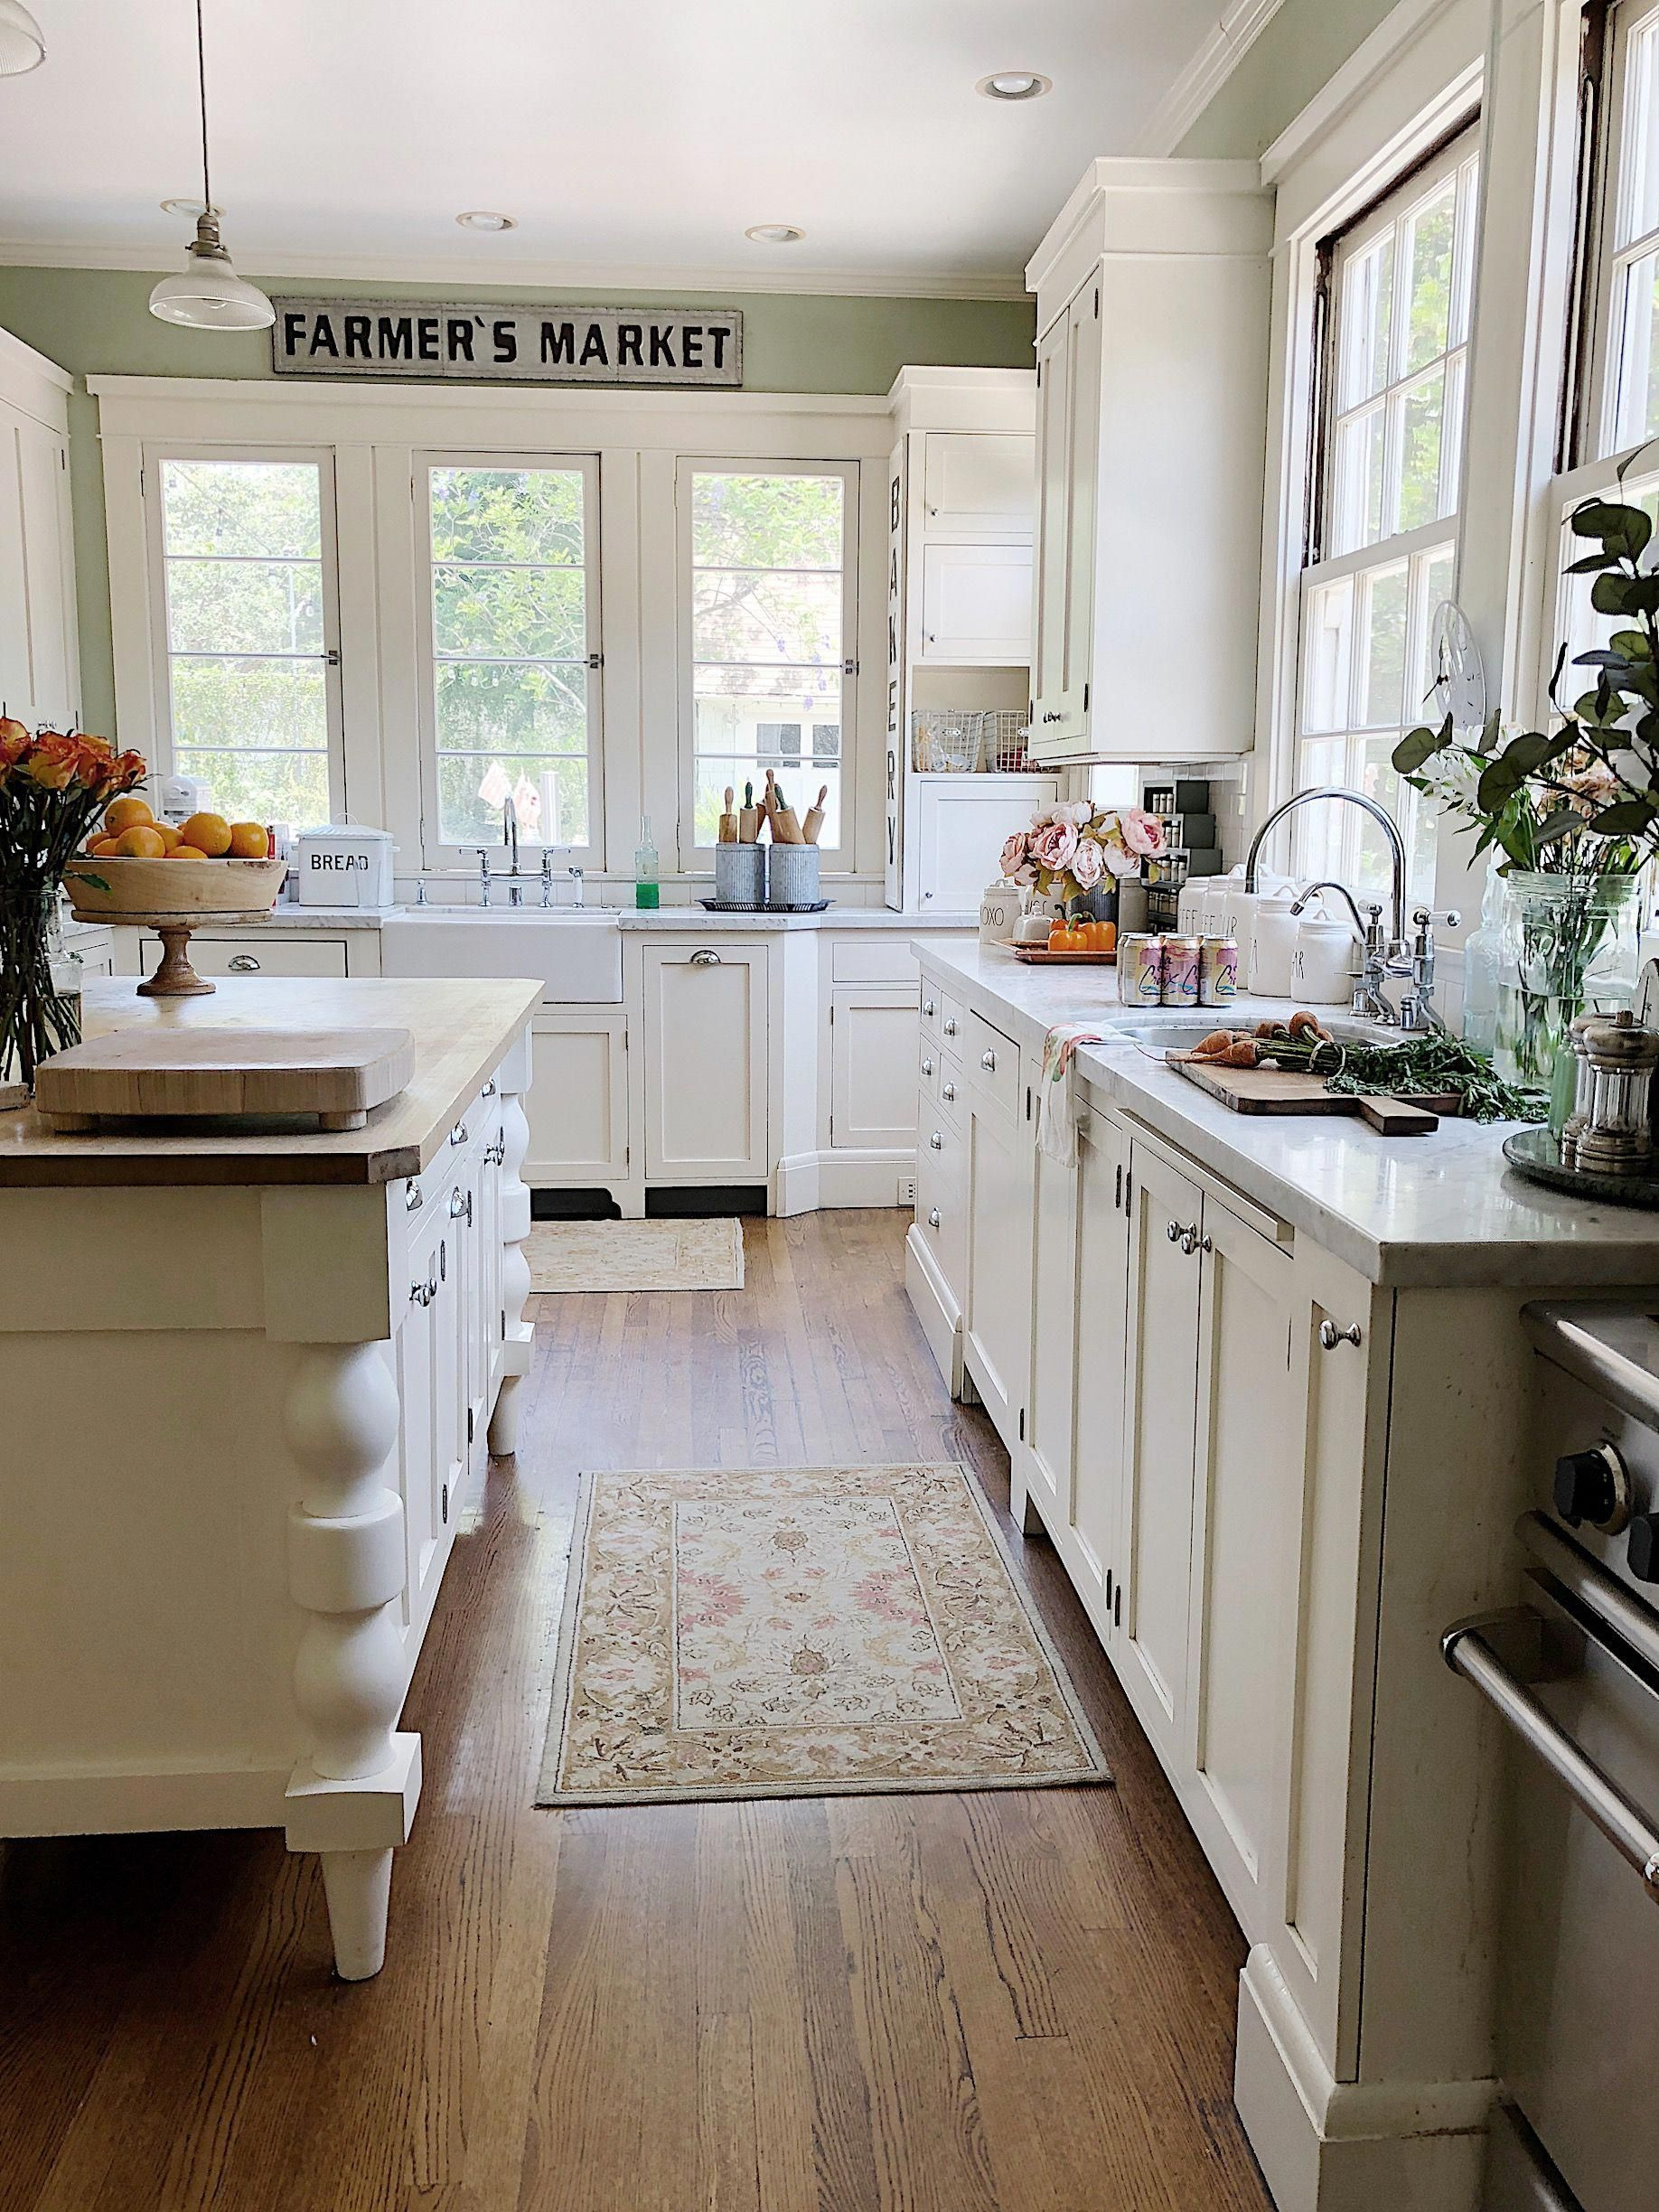 easy summer styling in our kitchen kitchen remodel old home remodel old house decorating on farmhouse kitchen kitchen id=38914